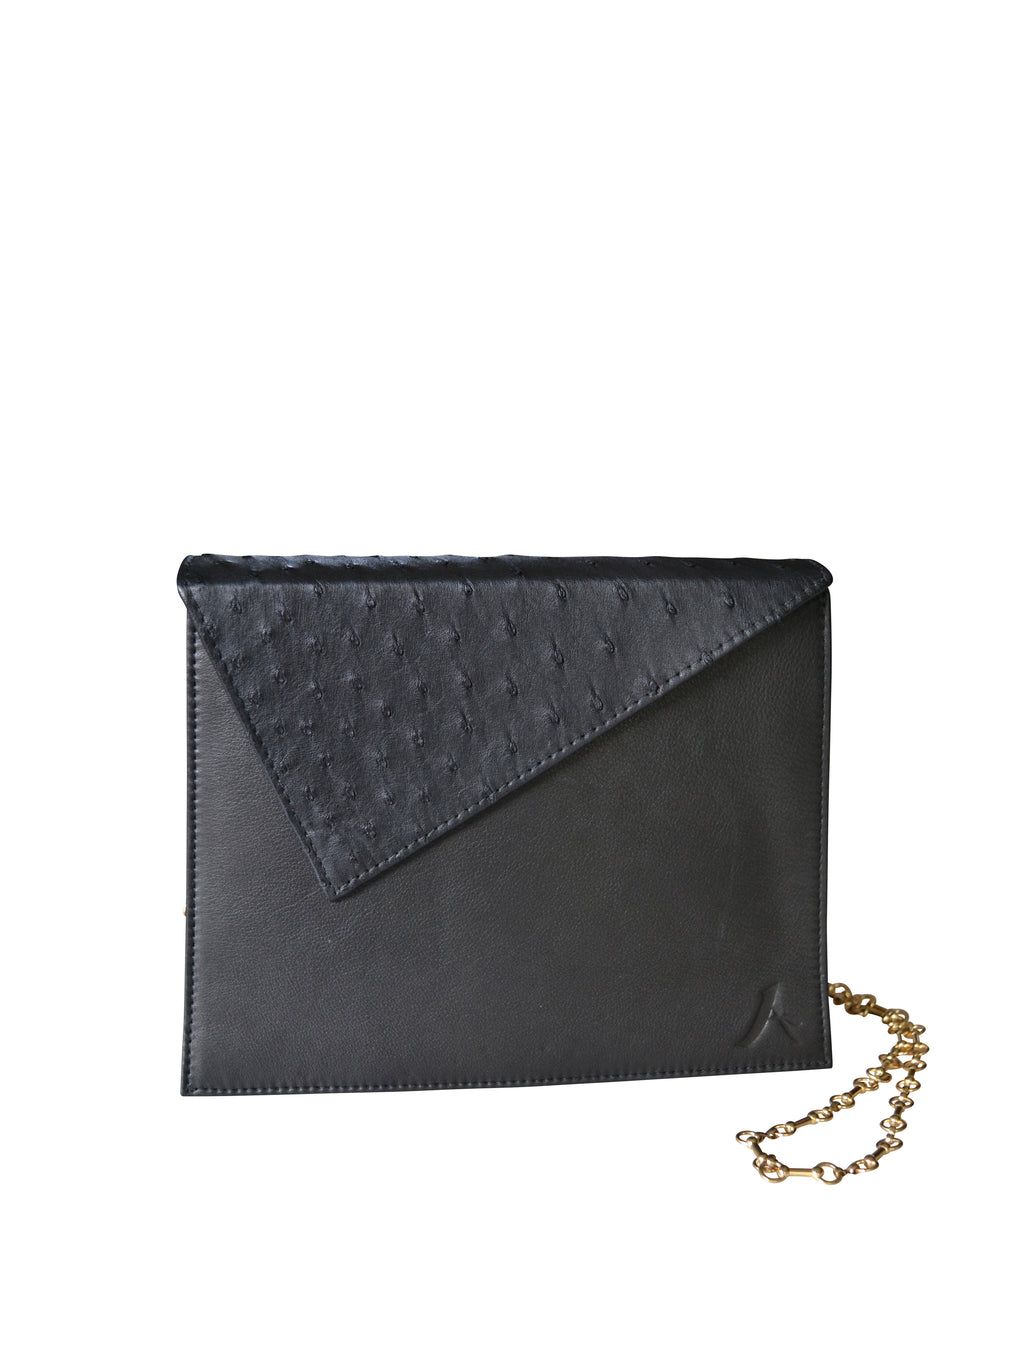 The A Clutch Luxury Women's Designer Italian Leather Handmade in LA